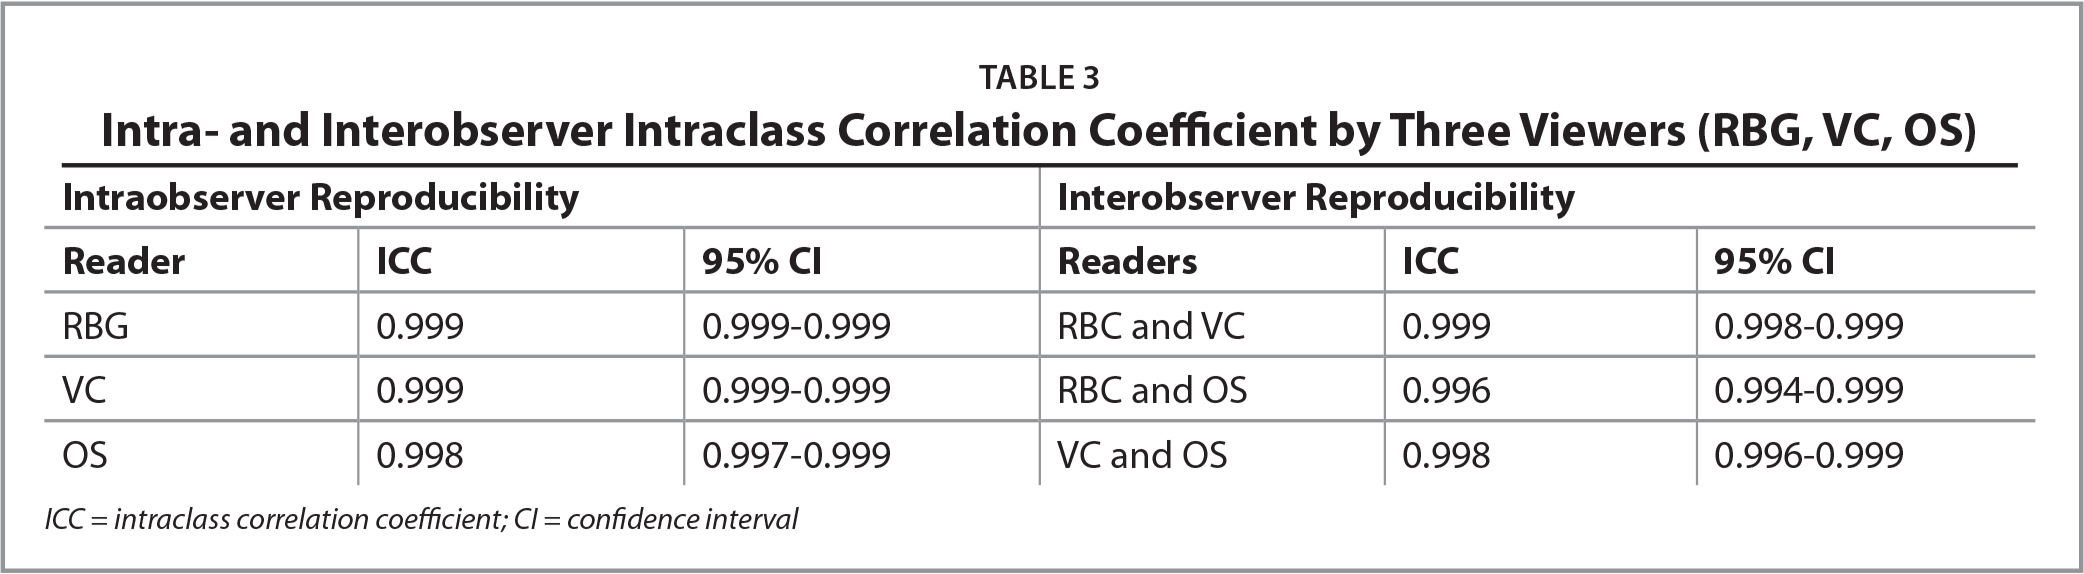 Intra- and Interobserver Intraclass Correlation Coefficient by Three Viewers (RBG, VC, OS)